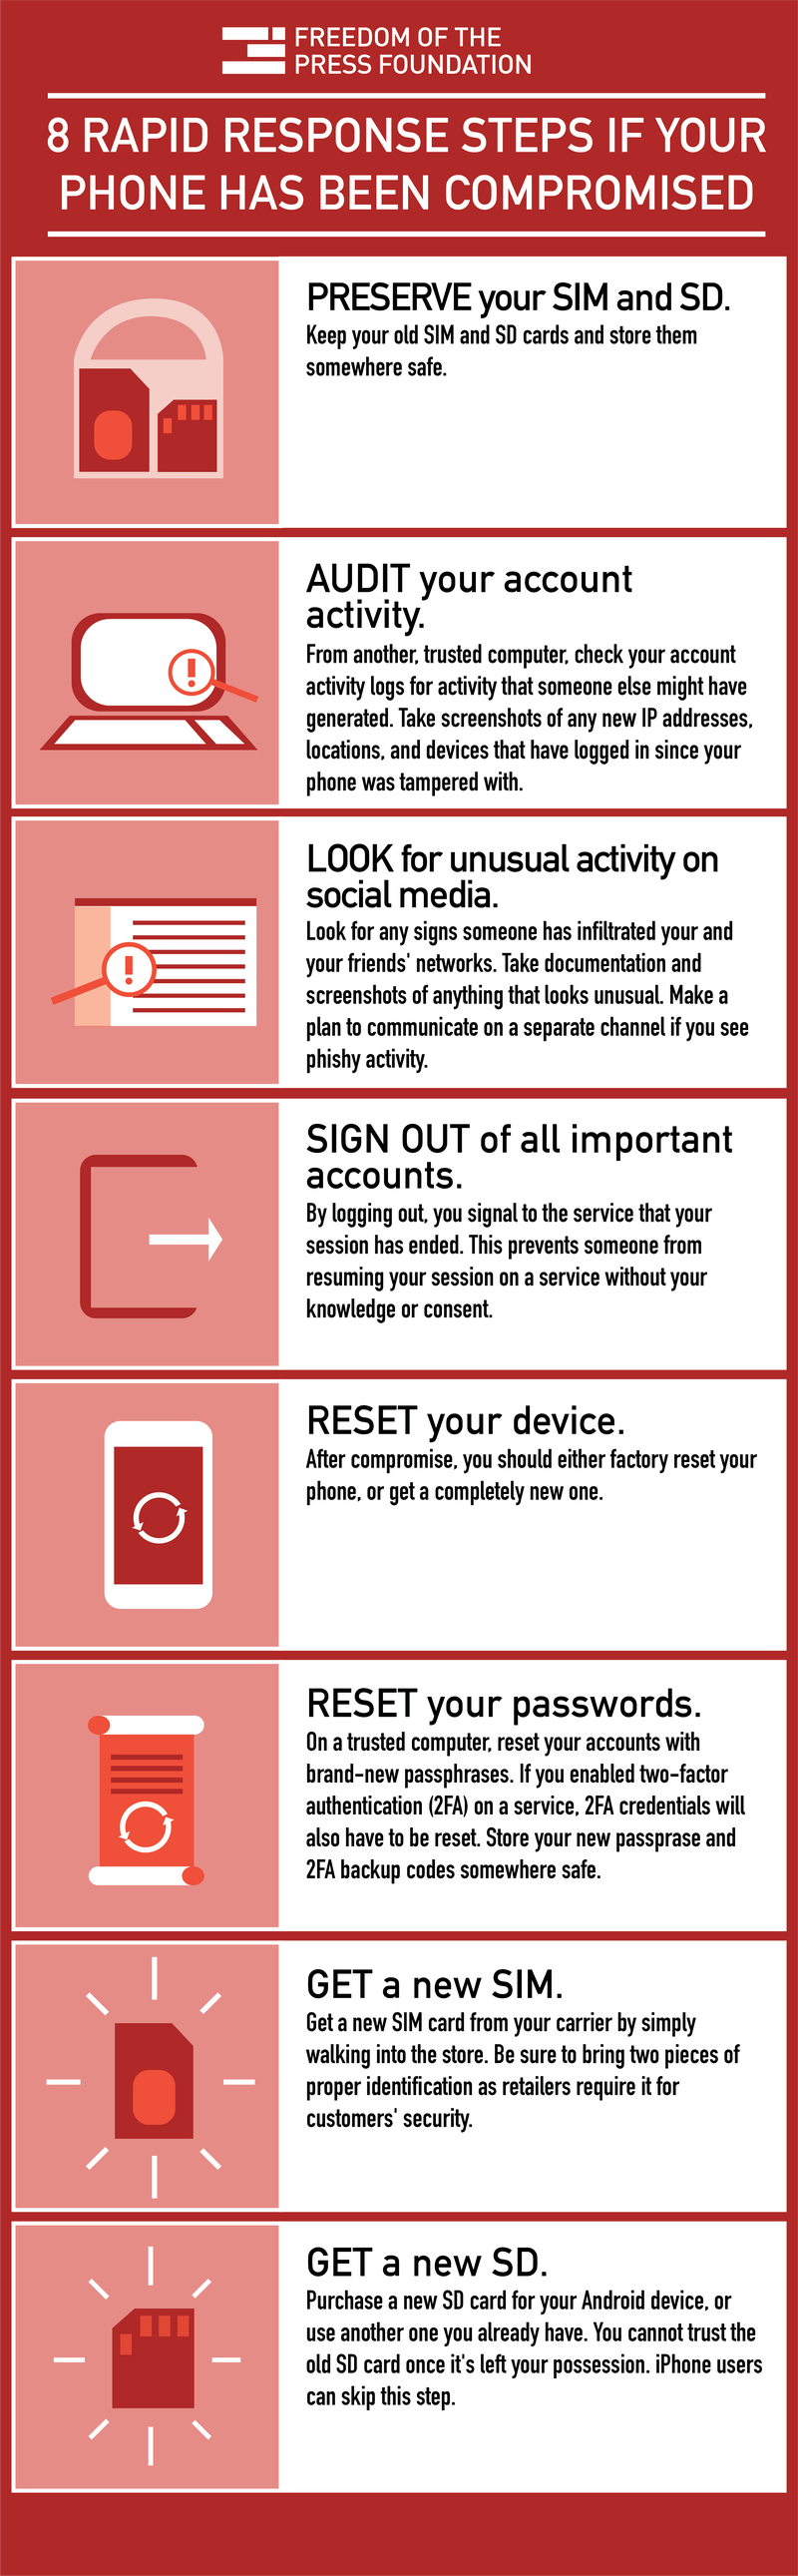 Mobile triage for activists how to respond to confiscation